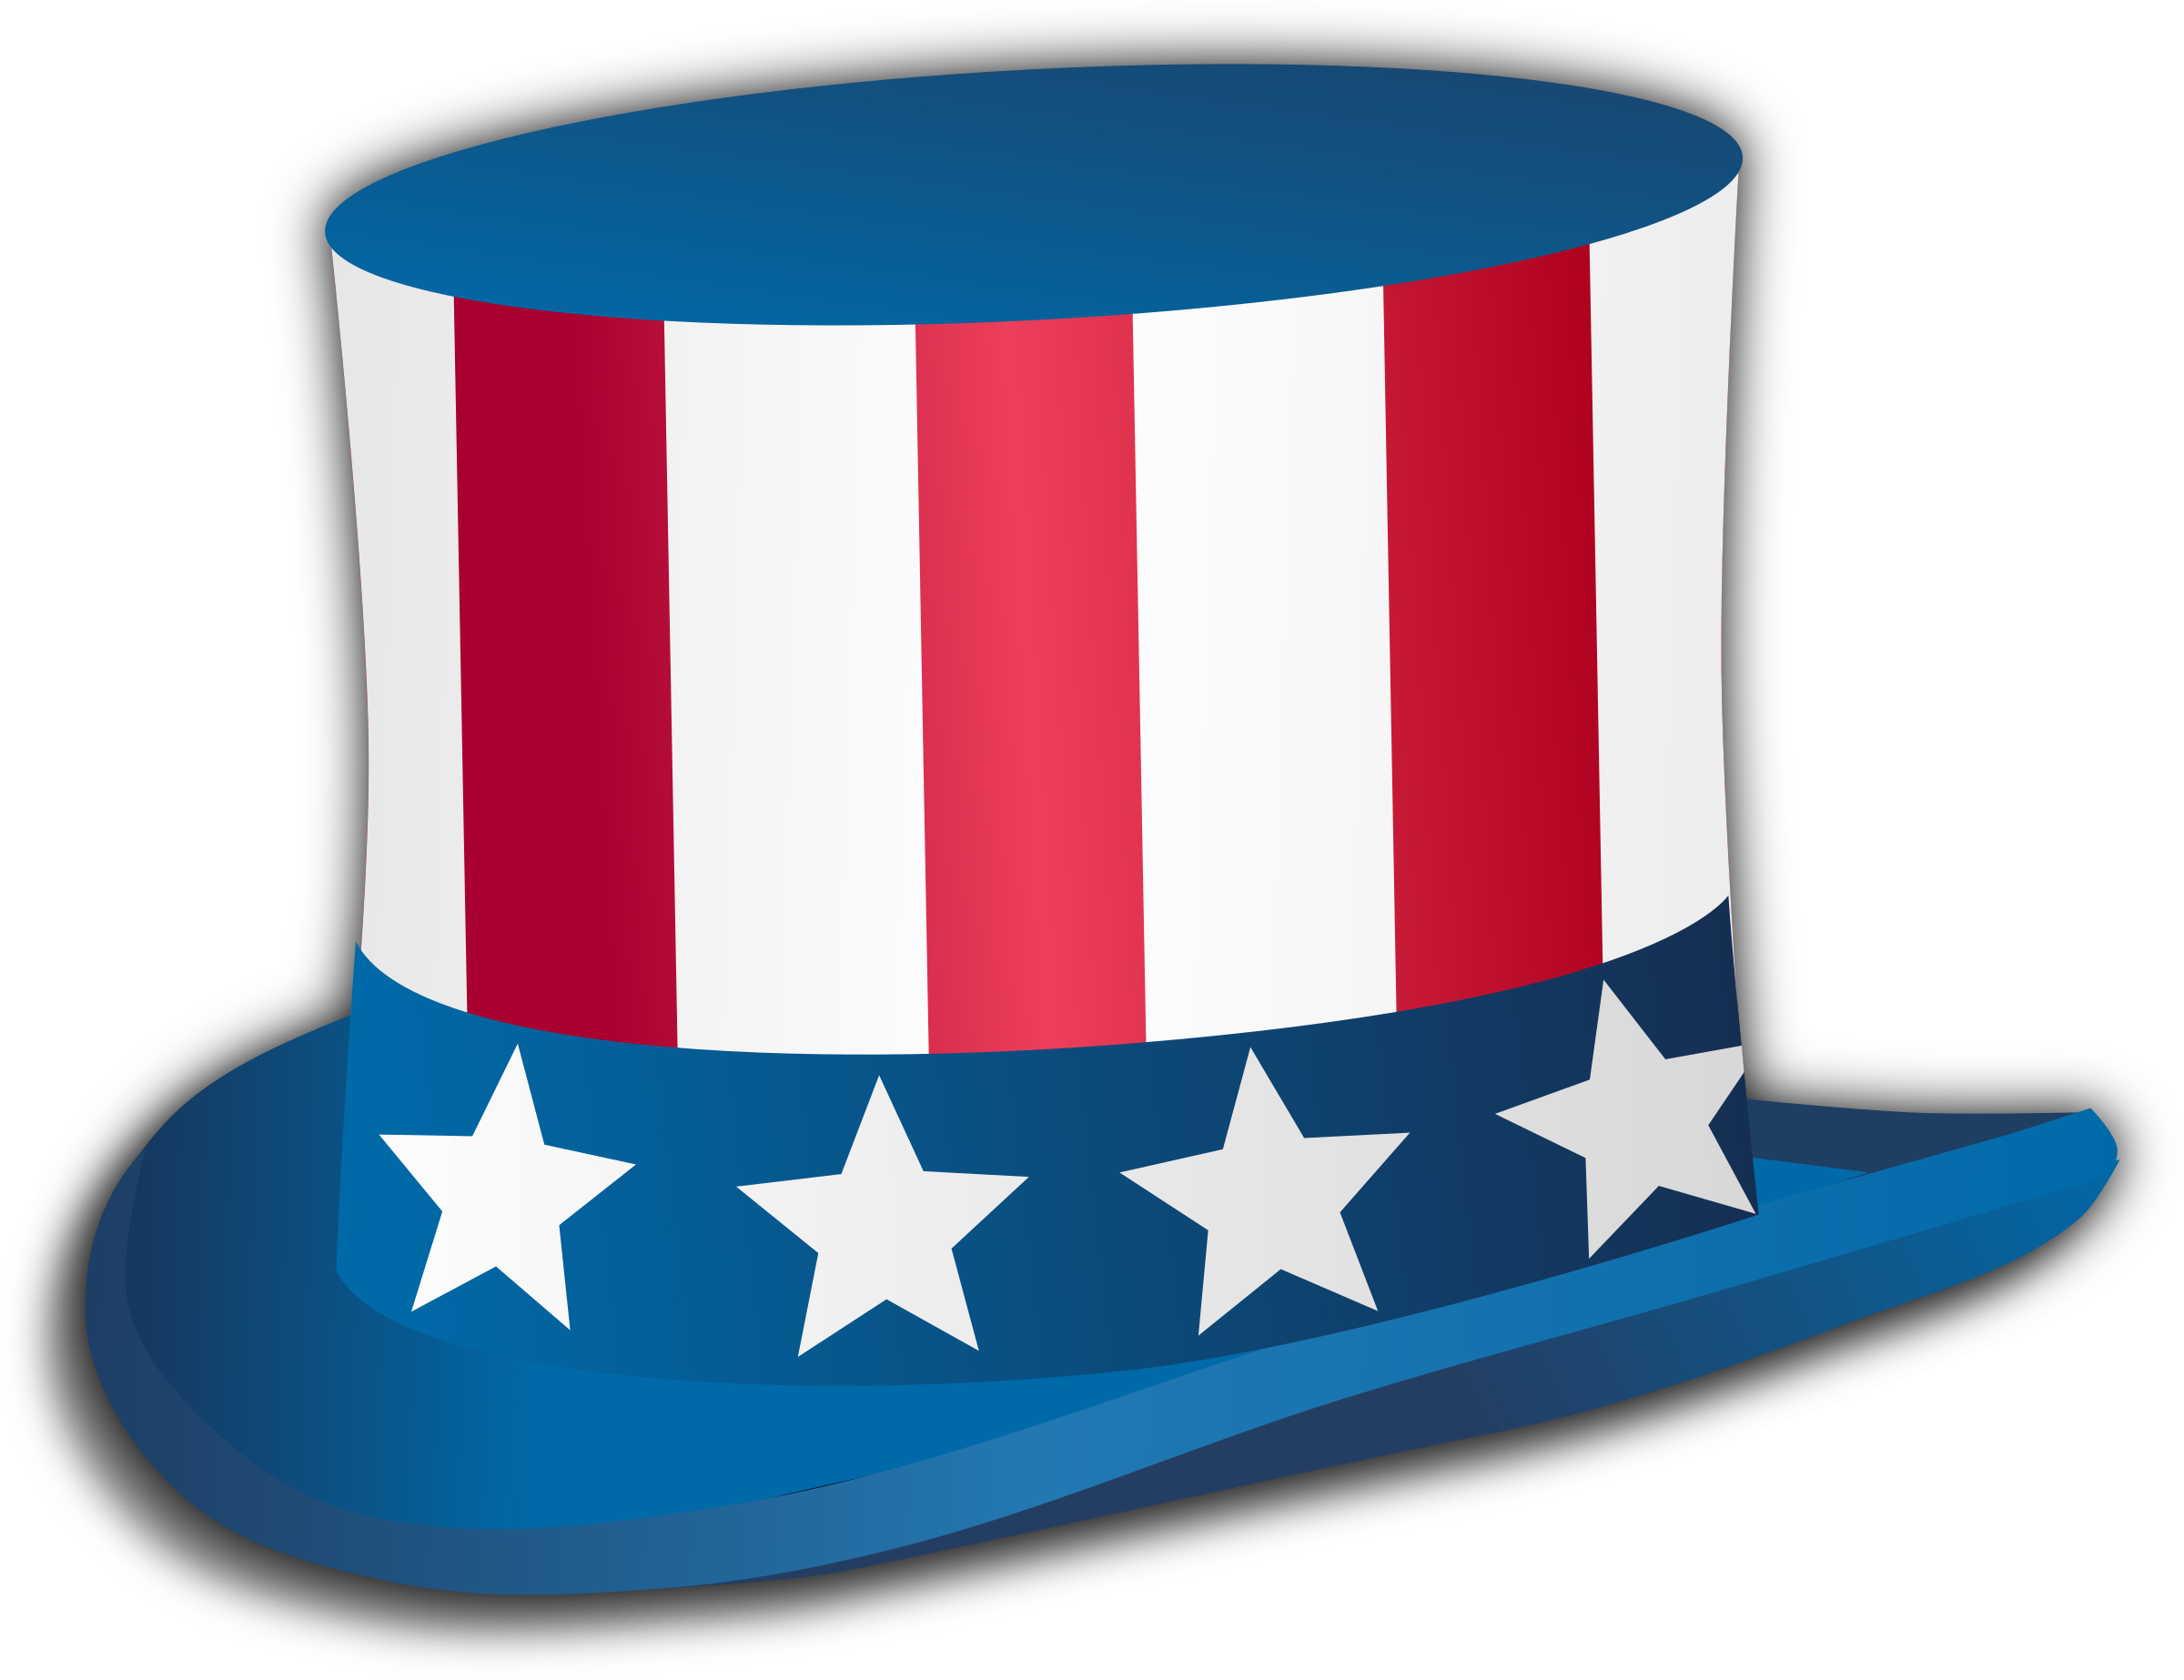 July clipart hat. Th big image png